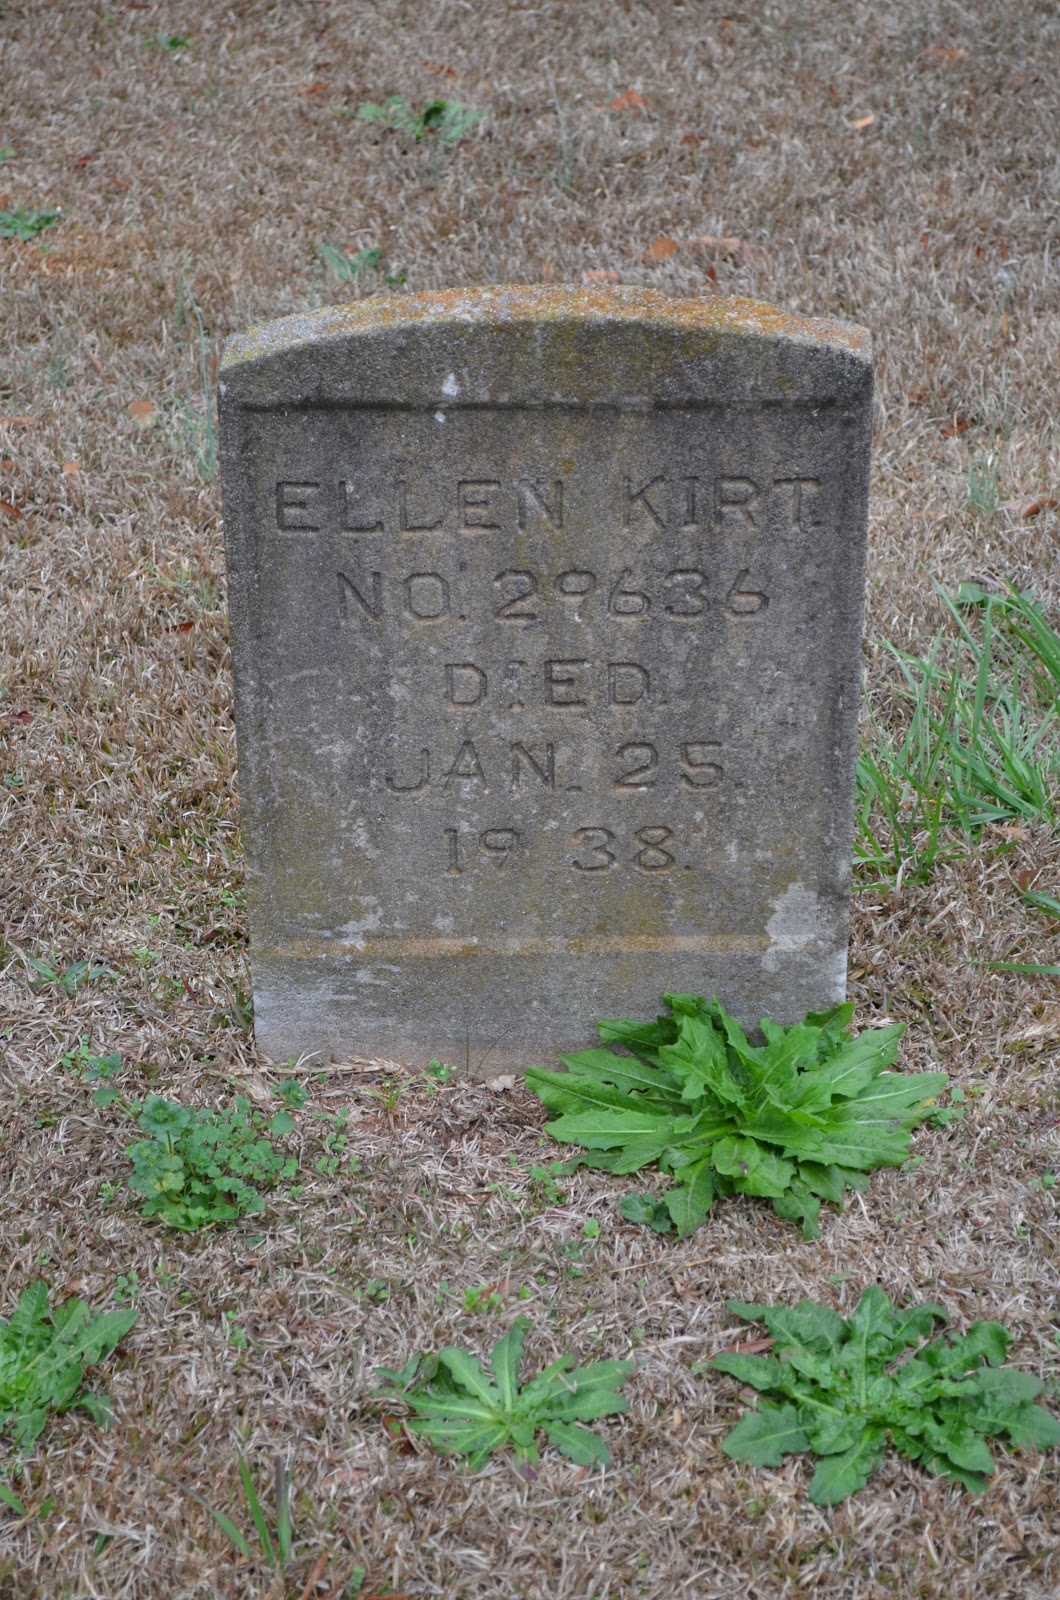 the numbers on these gravestones lead us to believe they were patients of the lunatic asylum